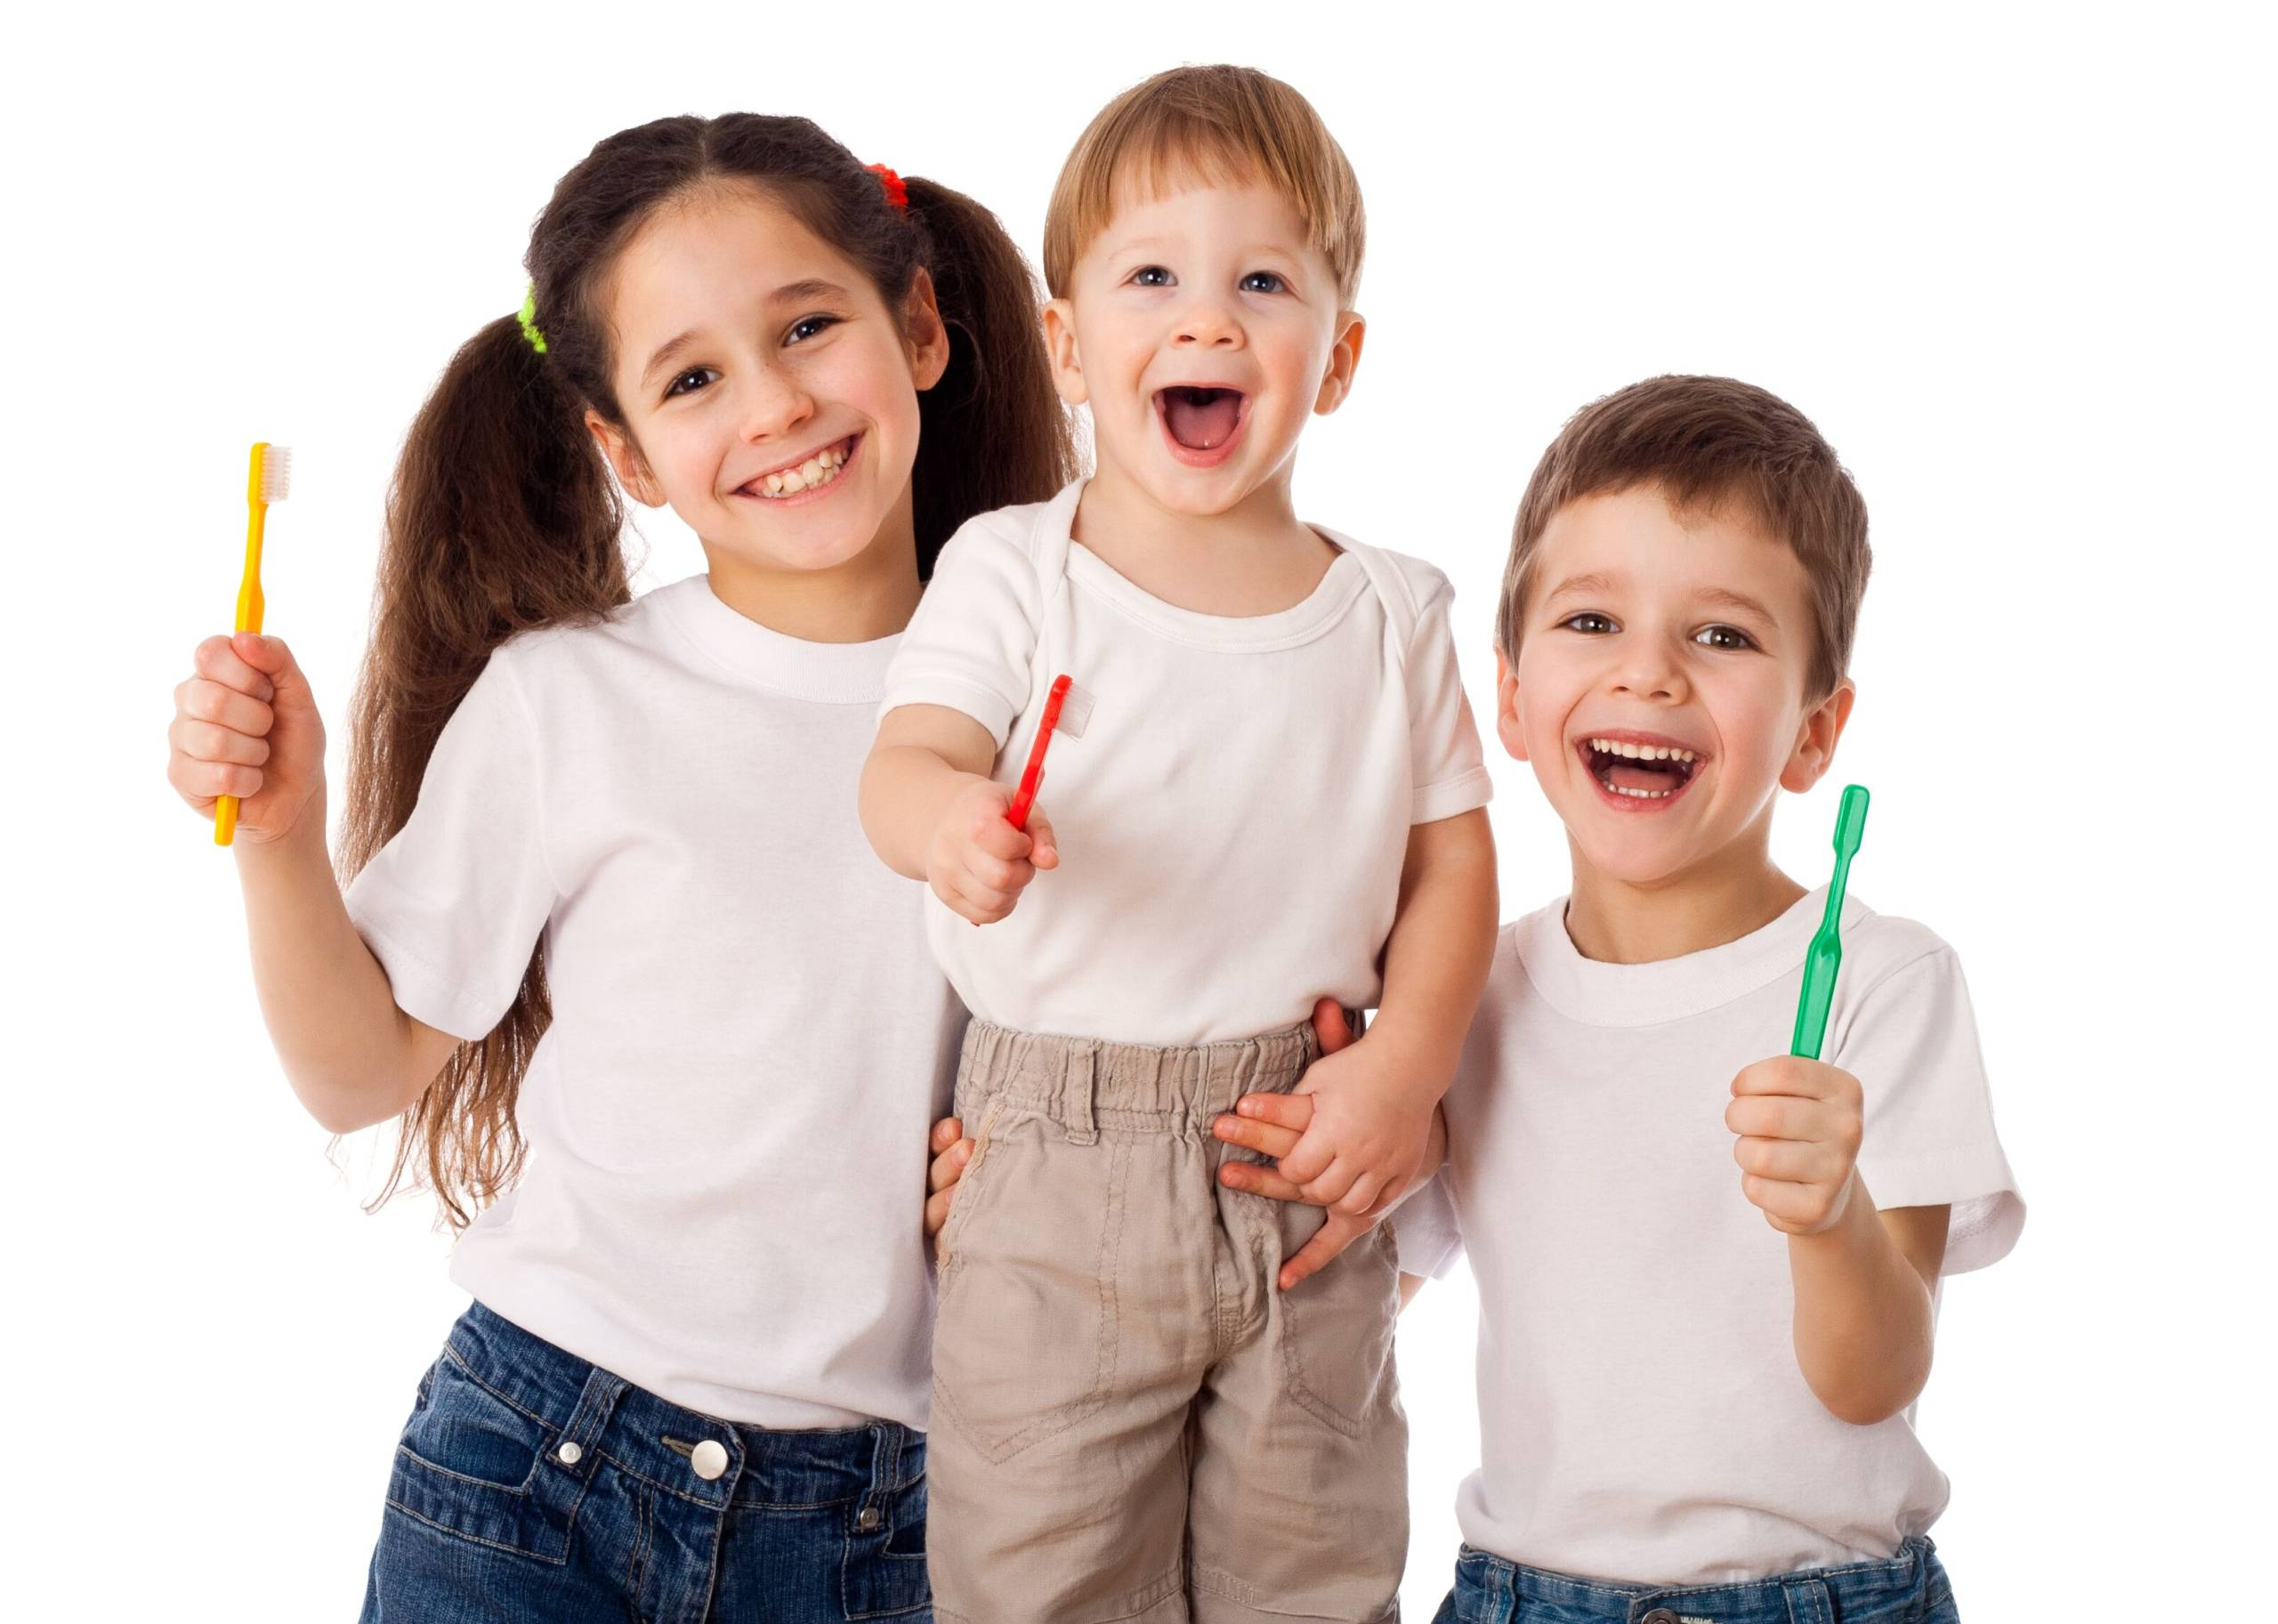 Tyler TX Pediatric Dentist | Getting a Healthy Start with Children's Dentistry